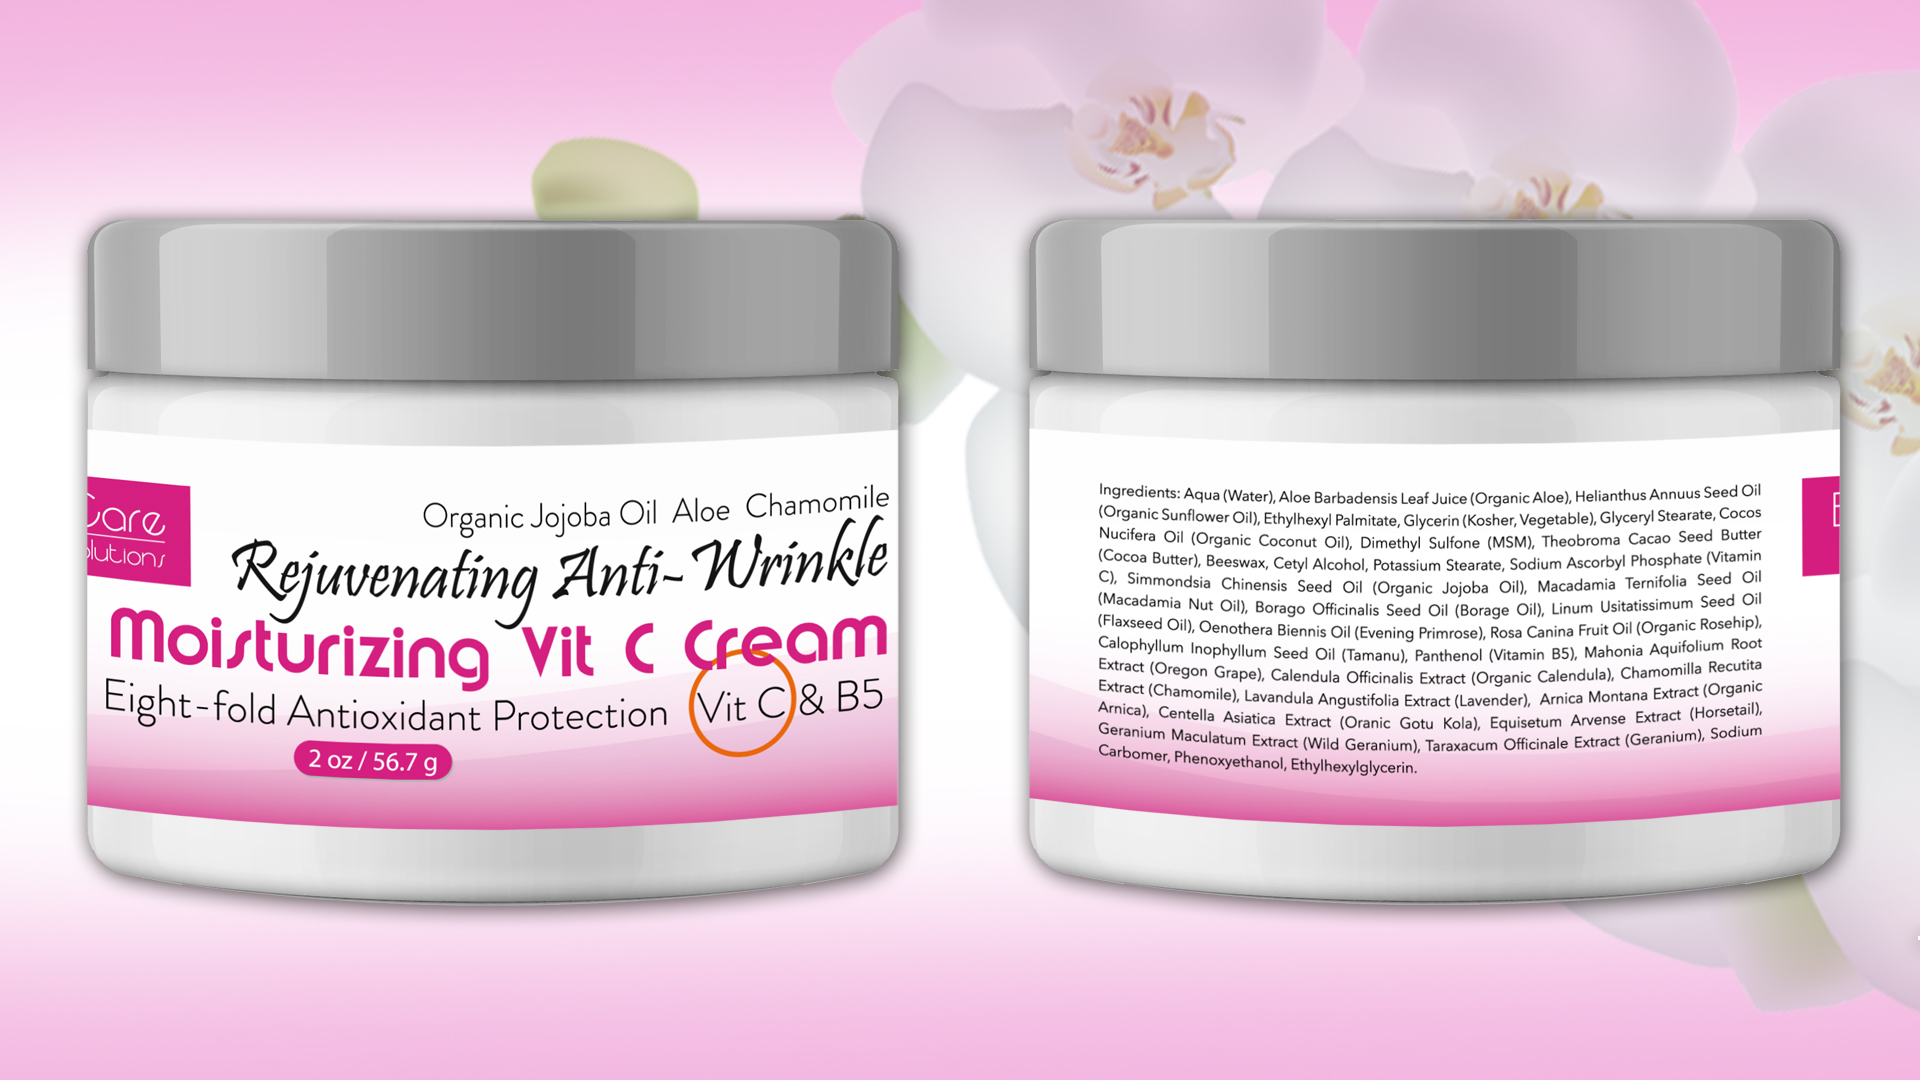 Elida Skin Care Vitamin C Cream with anti-aging and anti-wrinkle properties